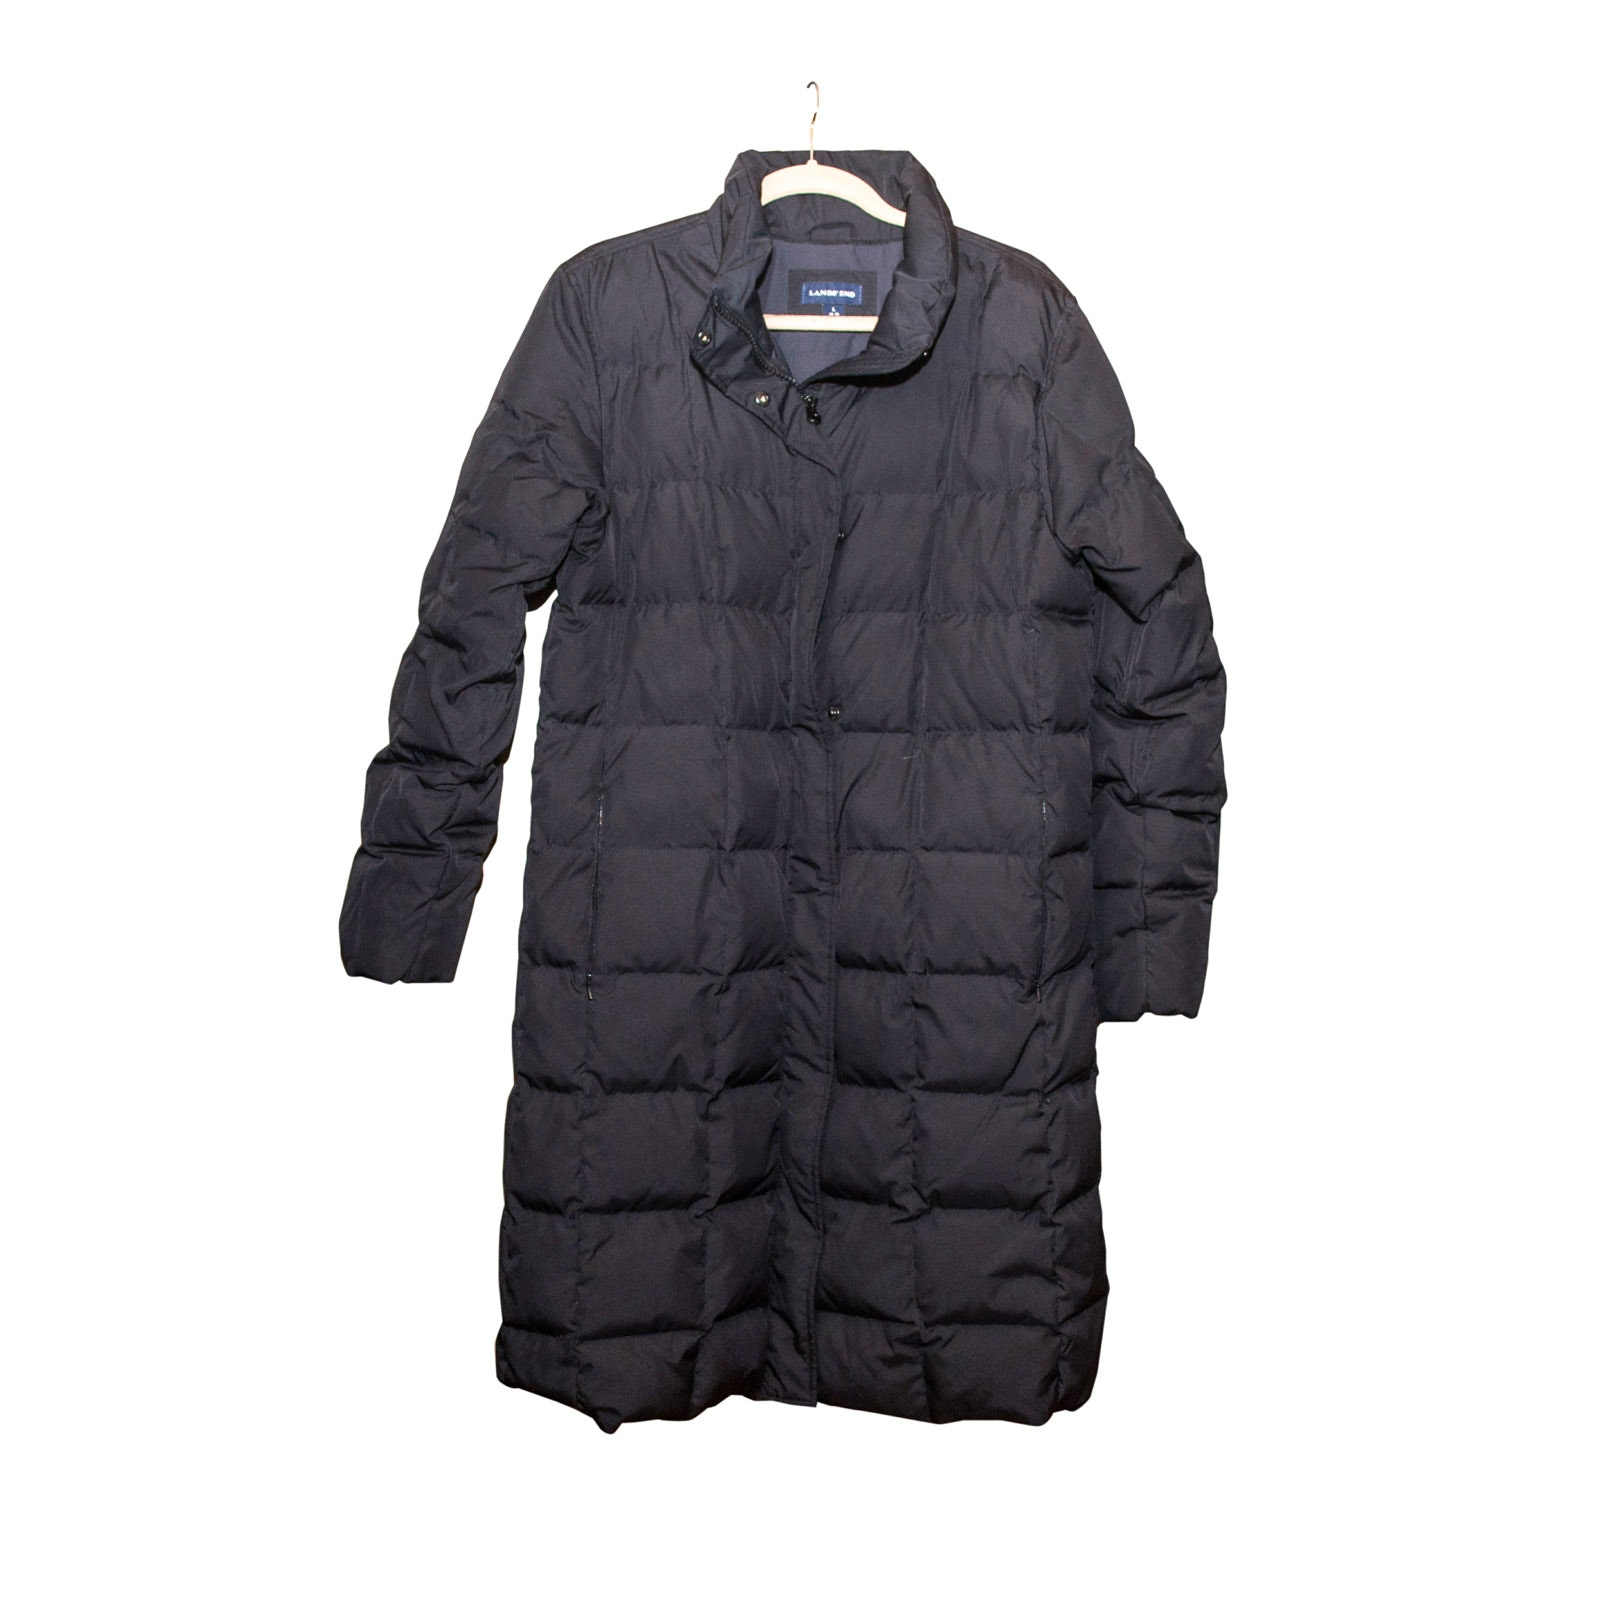 Lands' End Black Down Coat